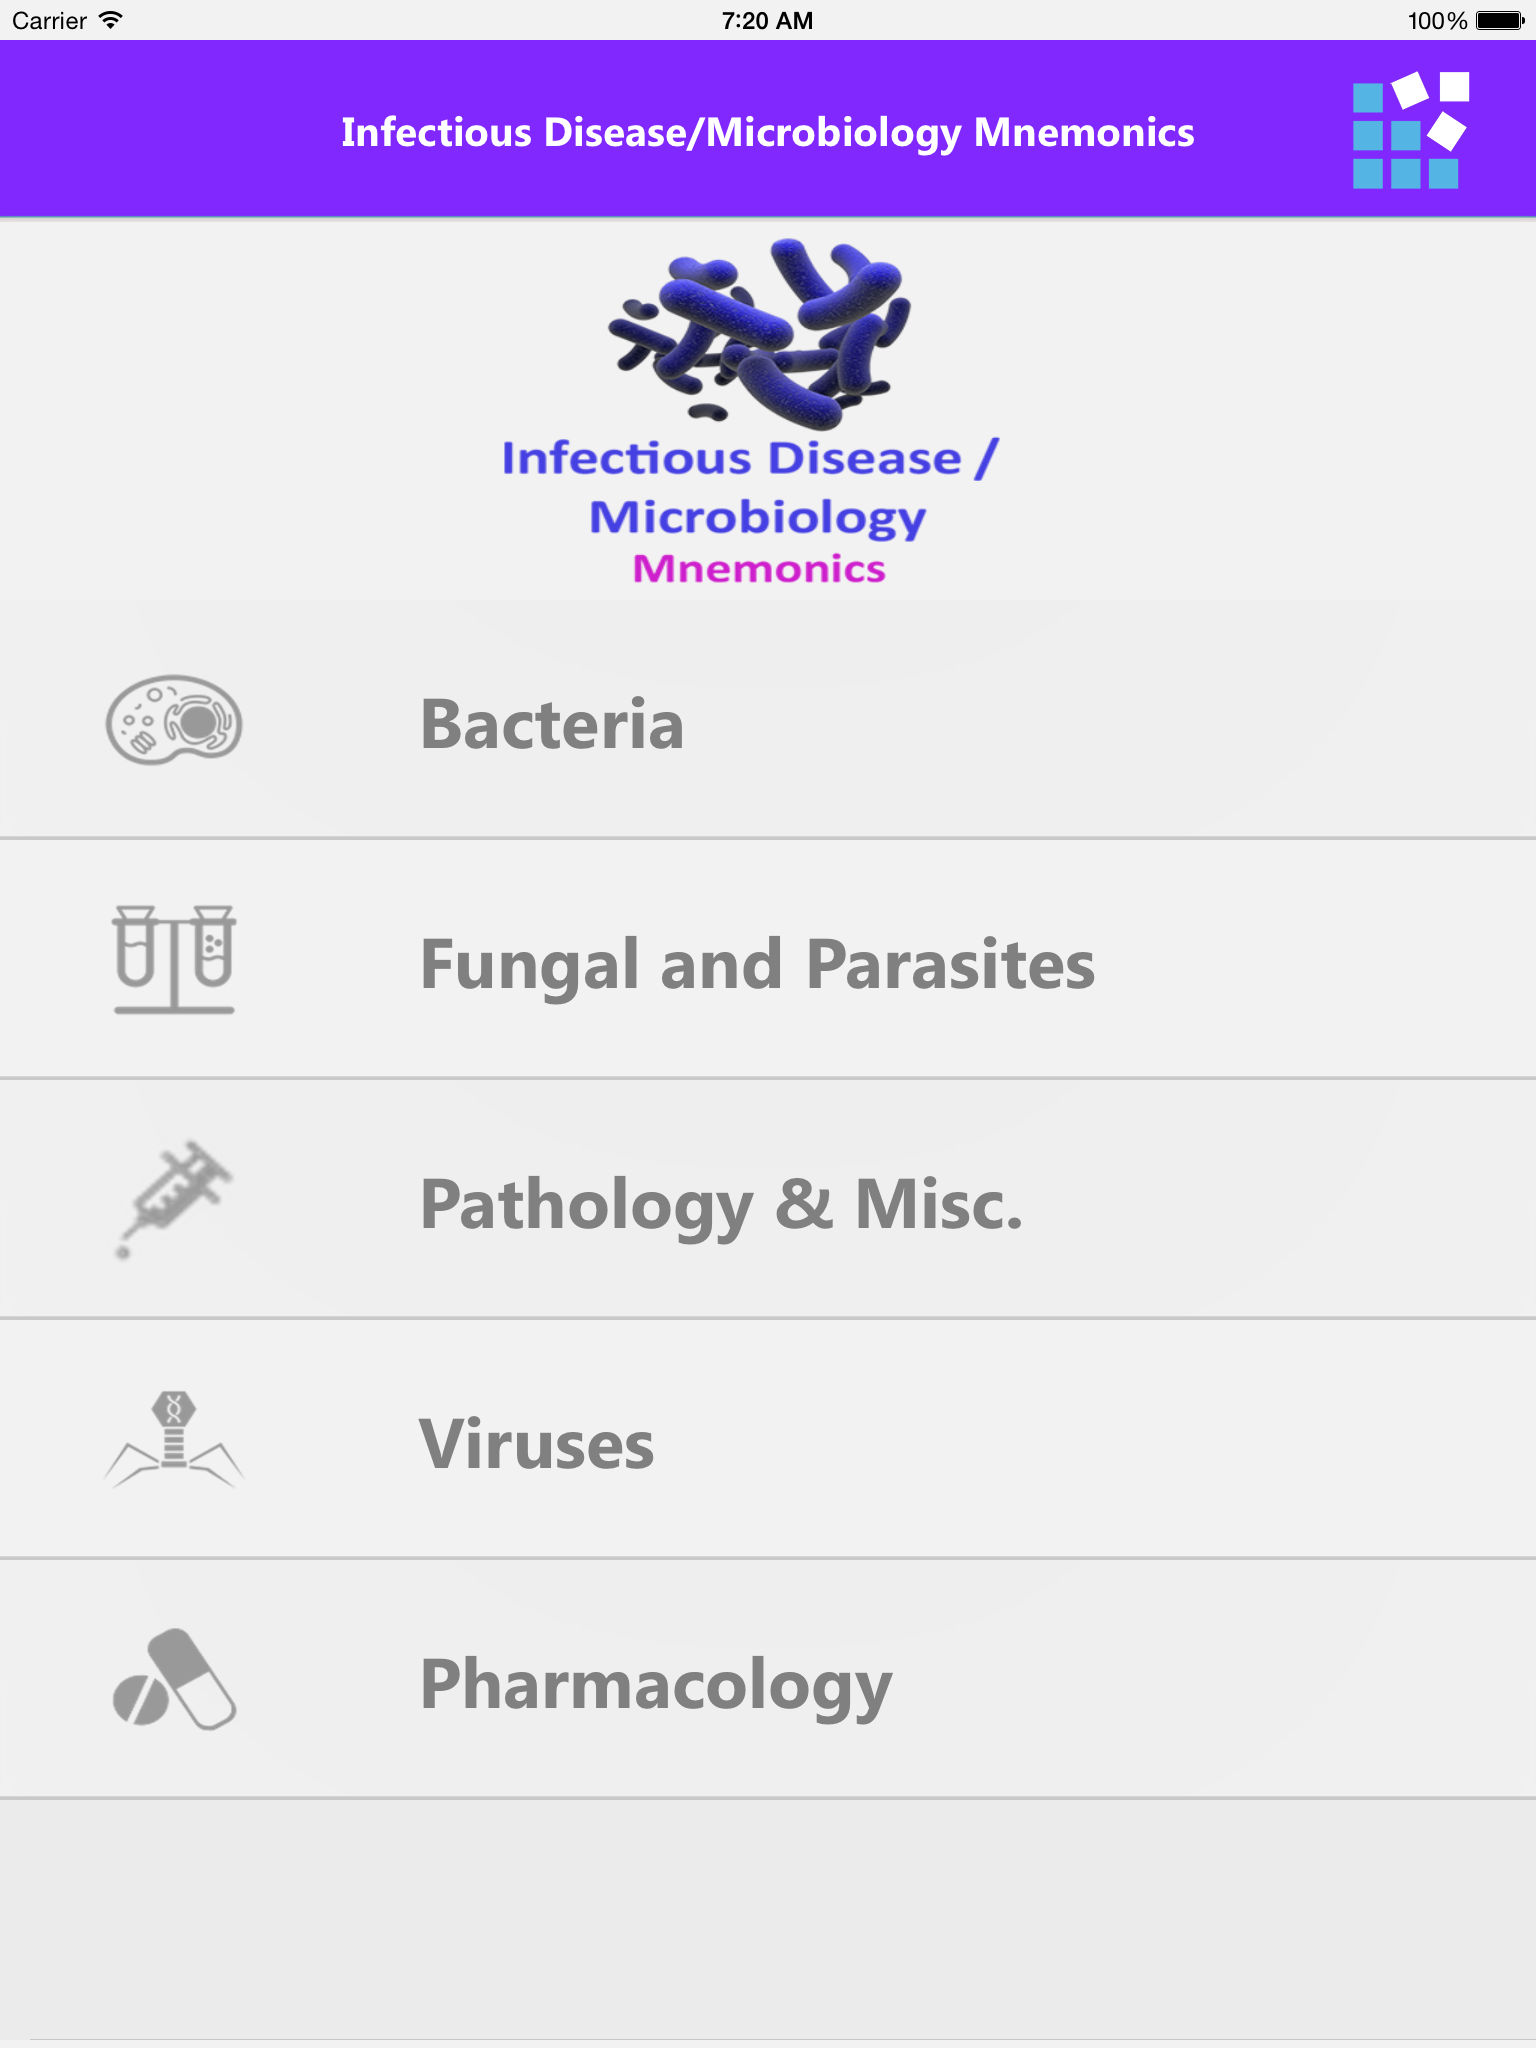 Infectious Disease Mnemonics App Ranking and Store Data